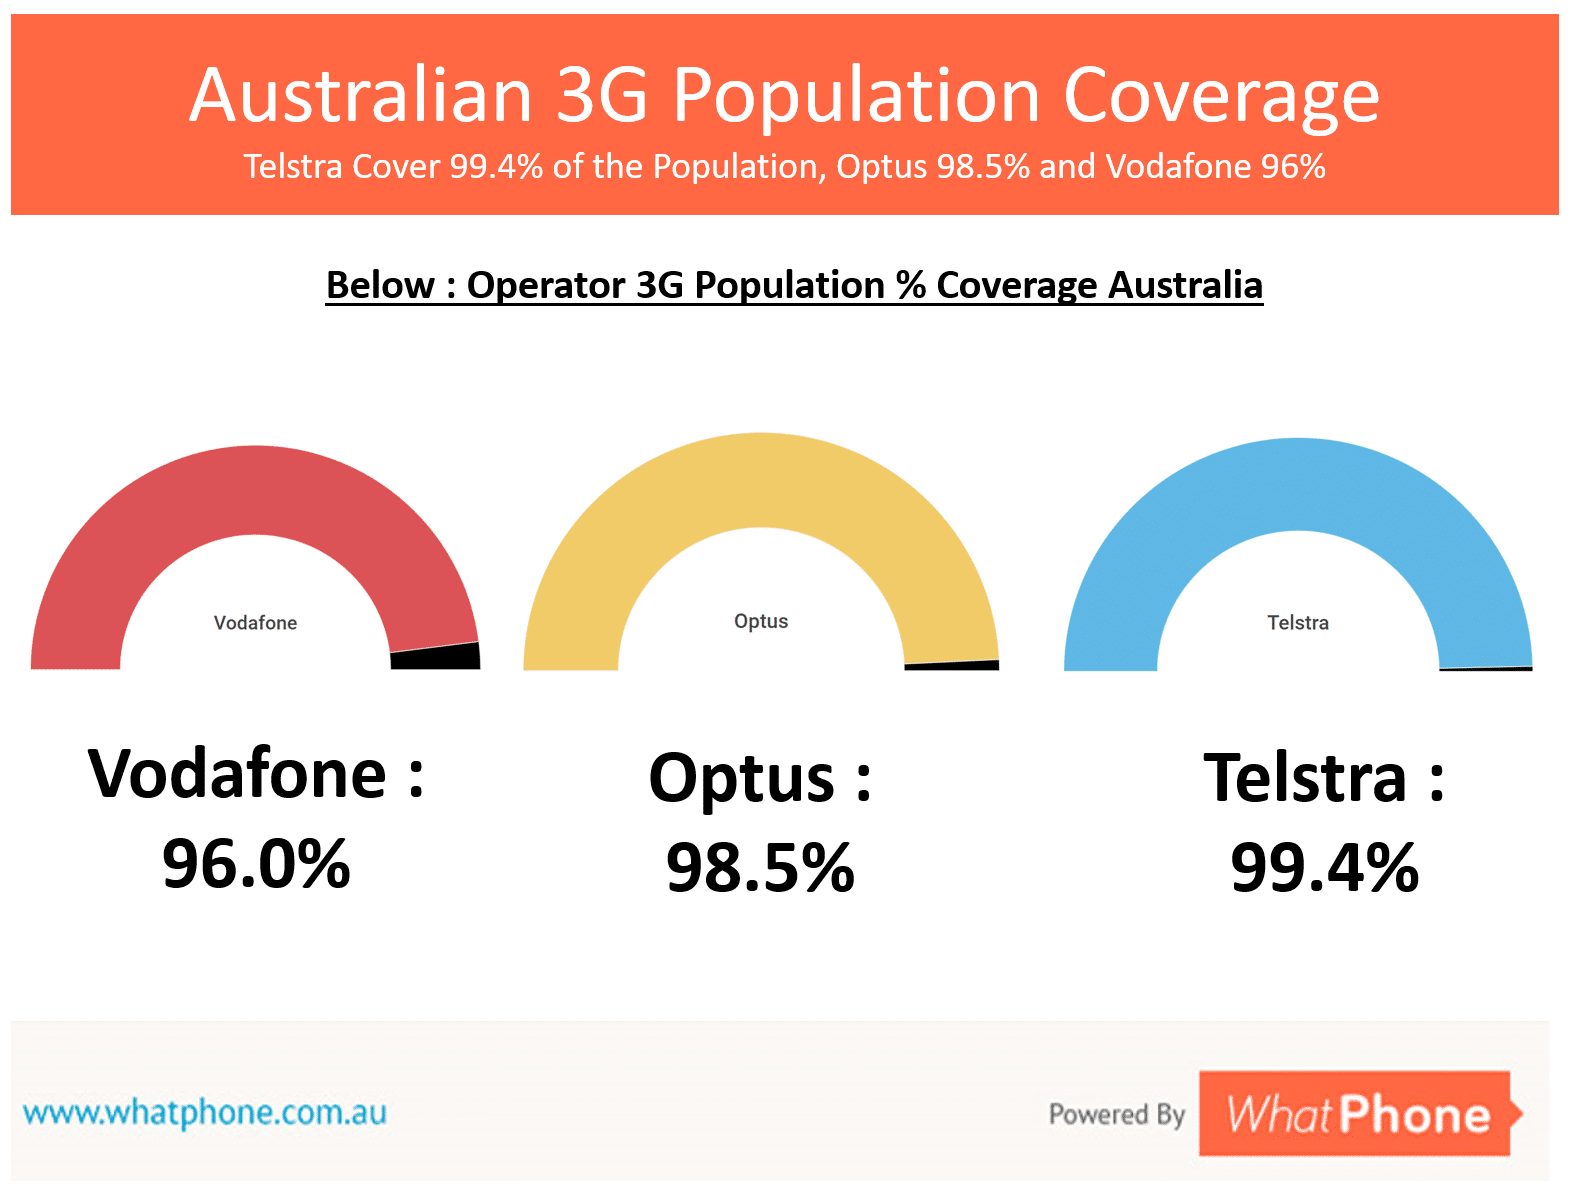 Australia's 3G population coverage statistics are quite similar. Even Vodafone cover 96% of the population of Australia with a 3G signal.